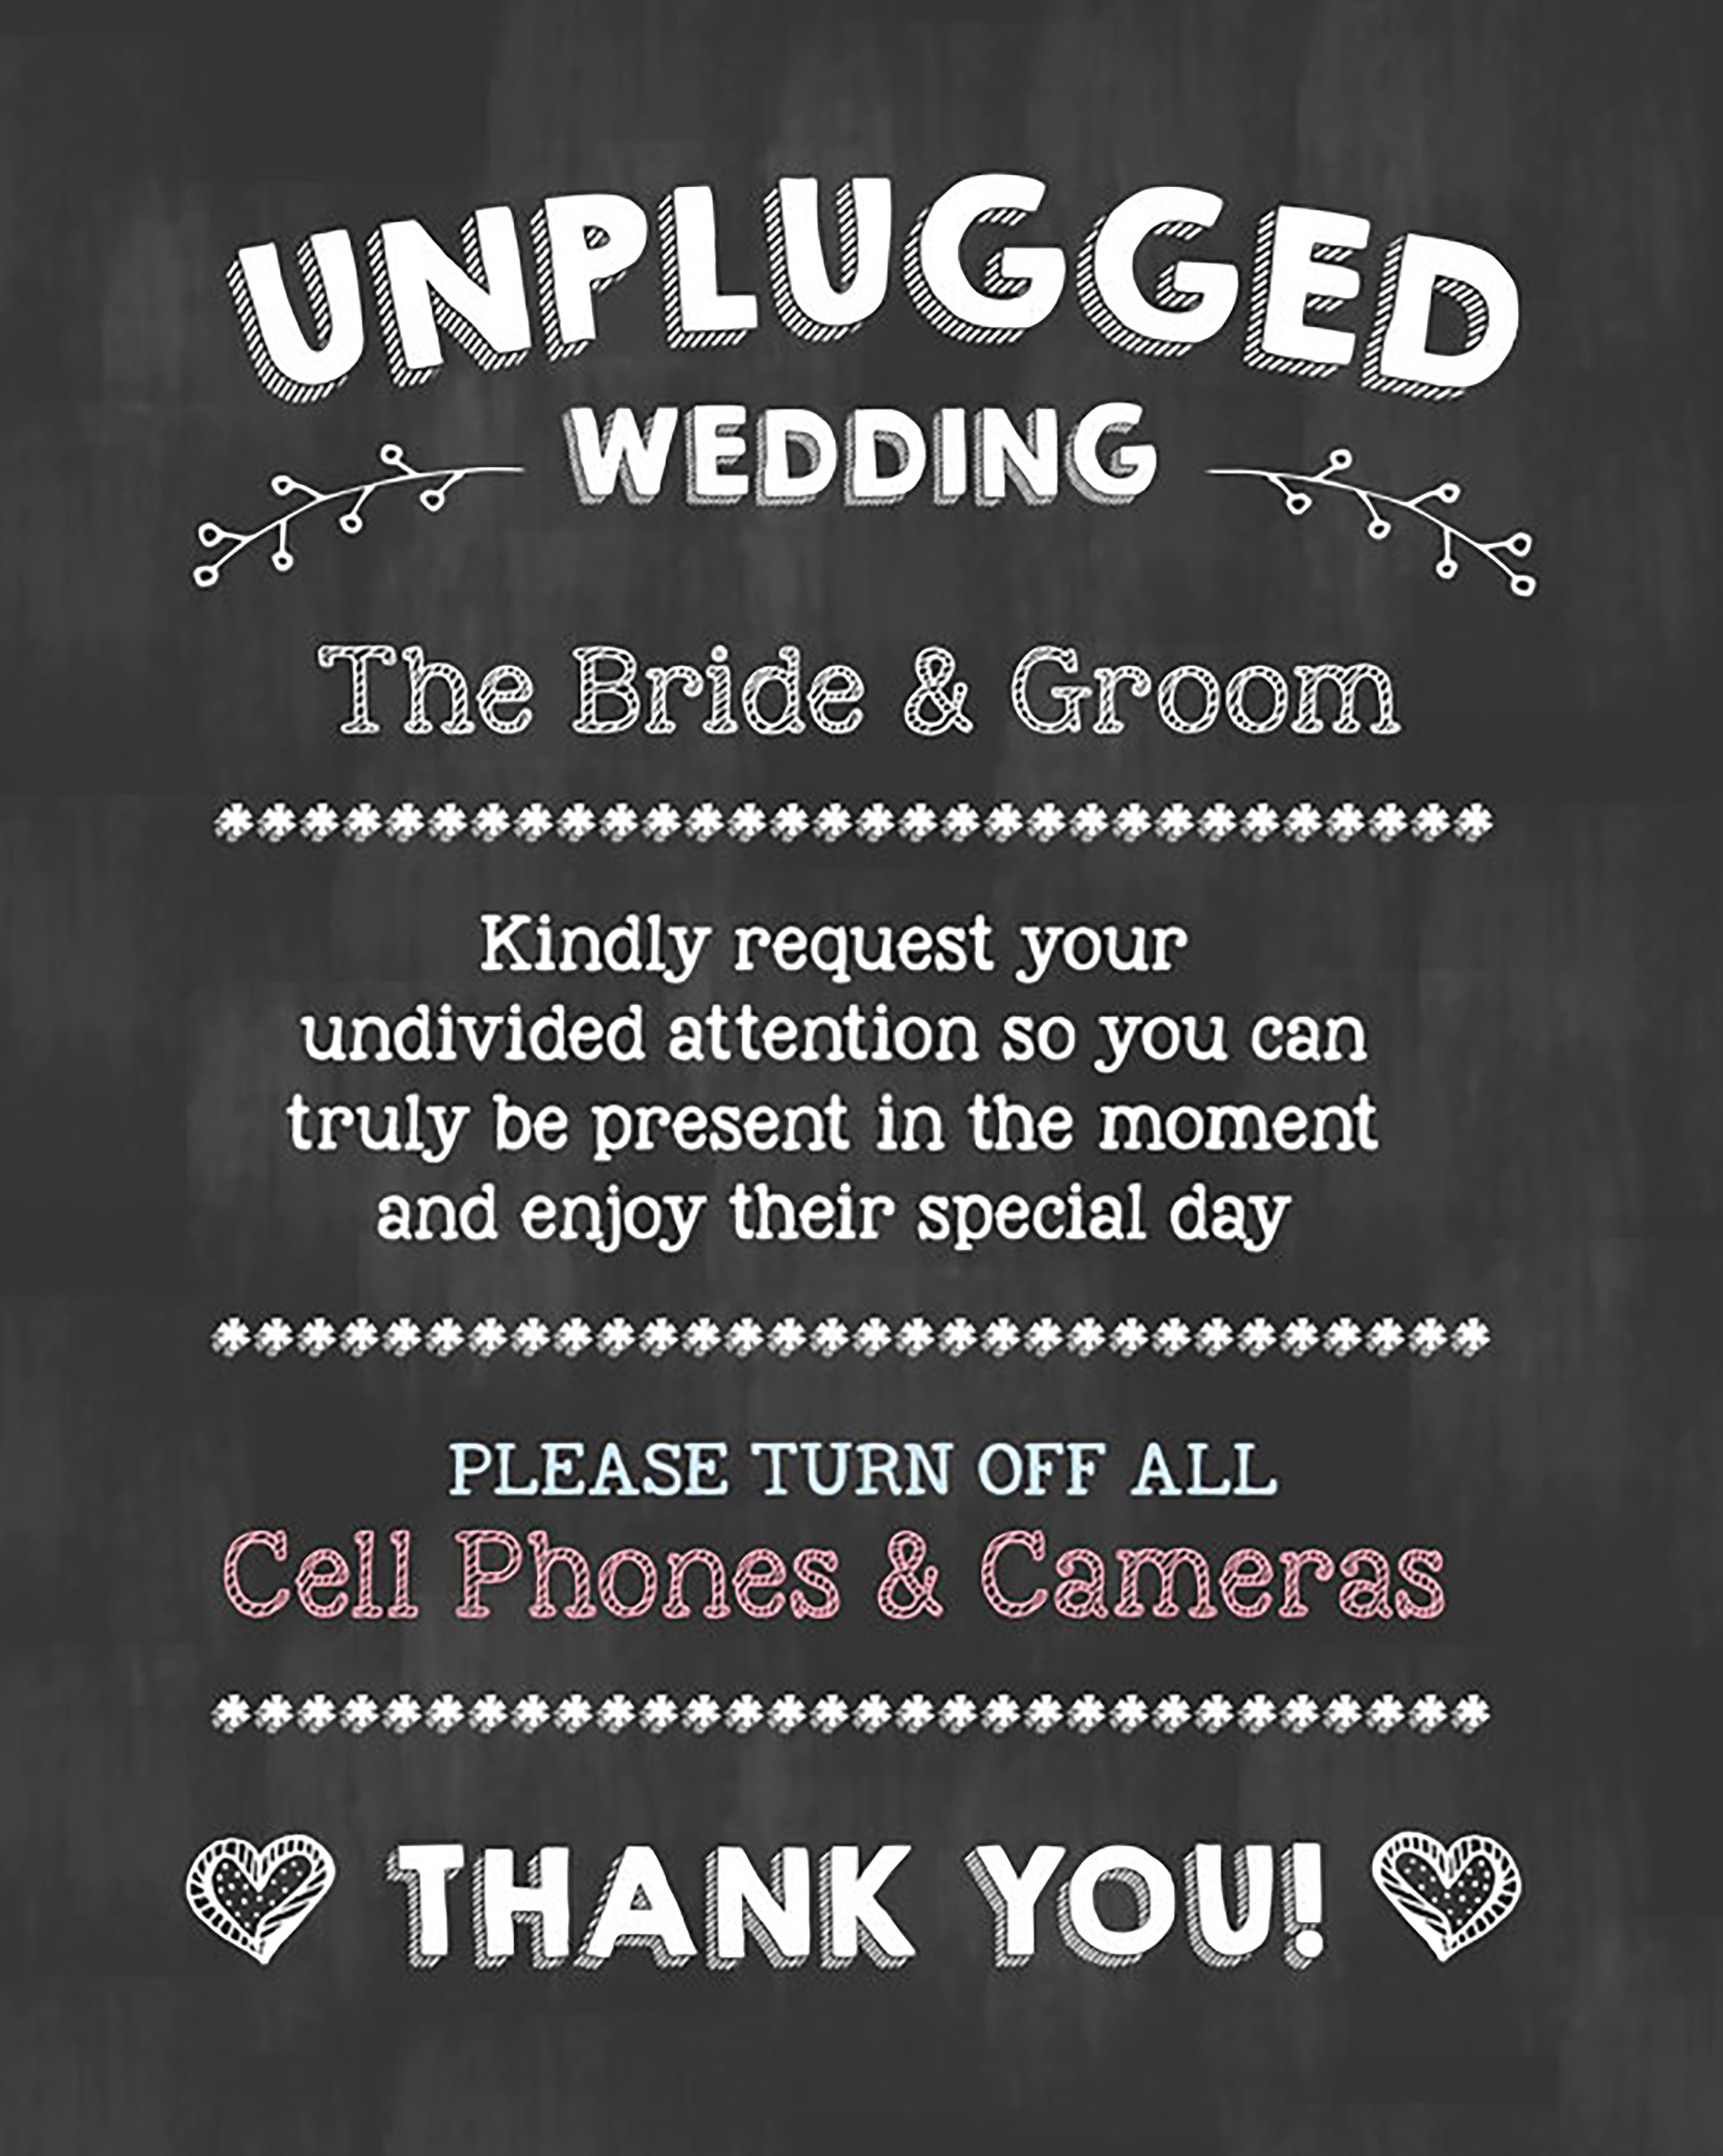 Unplugged-Wedding-Poster-16x20.jpg